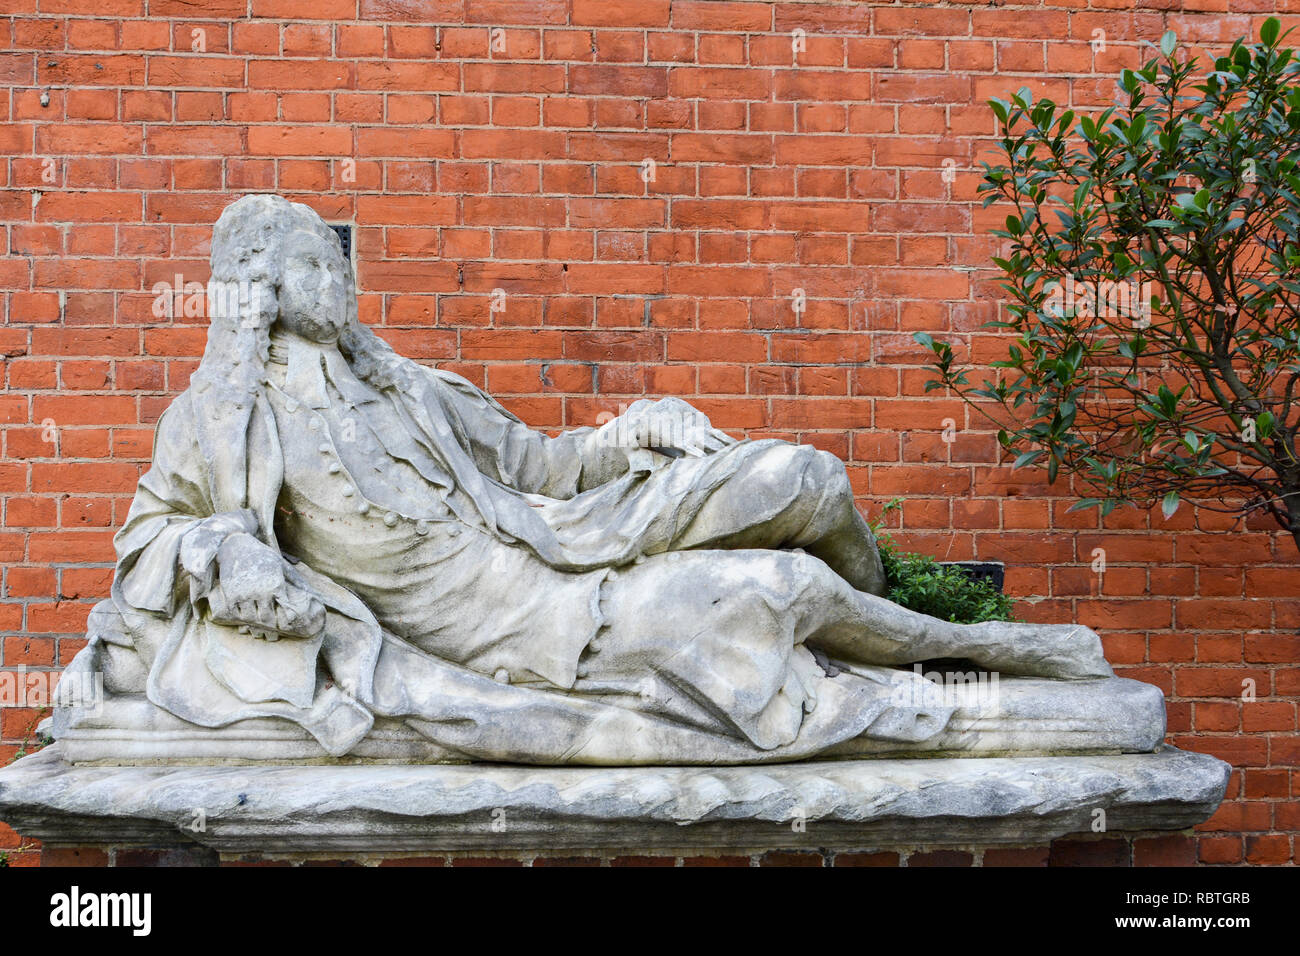 Reclining male figure in period costume and monument to Johannes Hiccocks Magister in Cancellario, Temple Church, London, UK - Stock Image